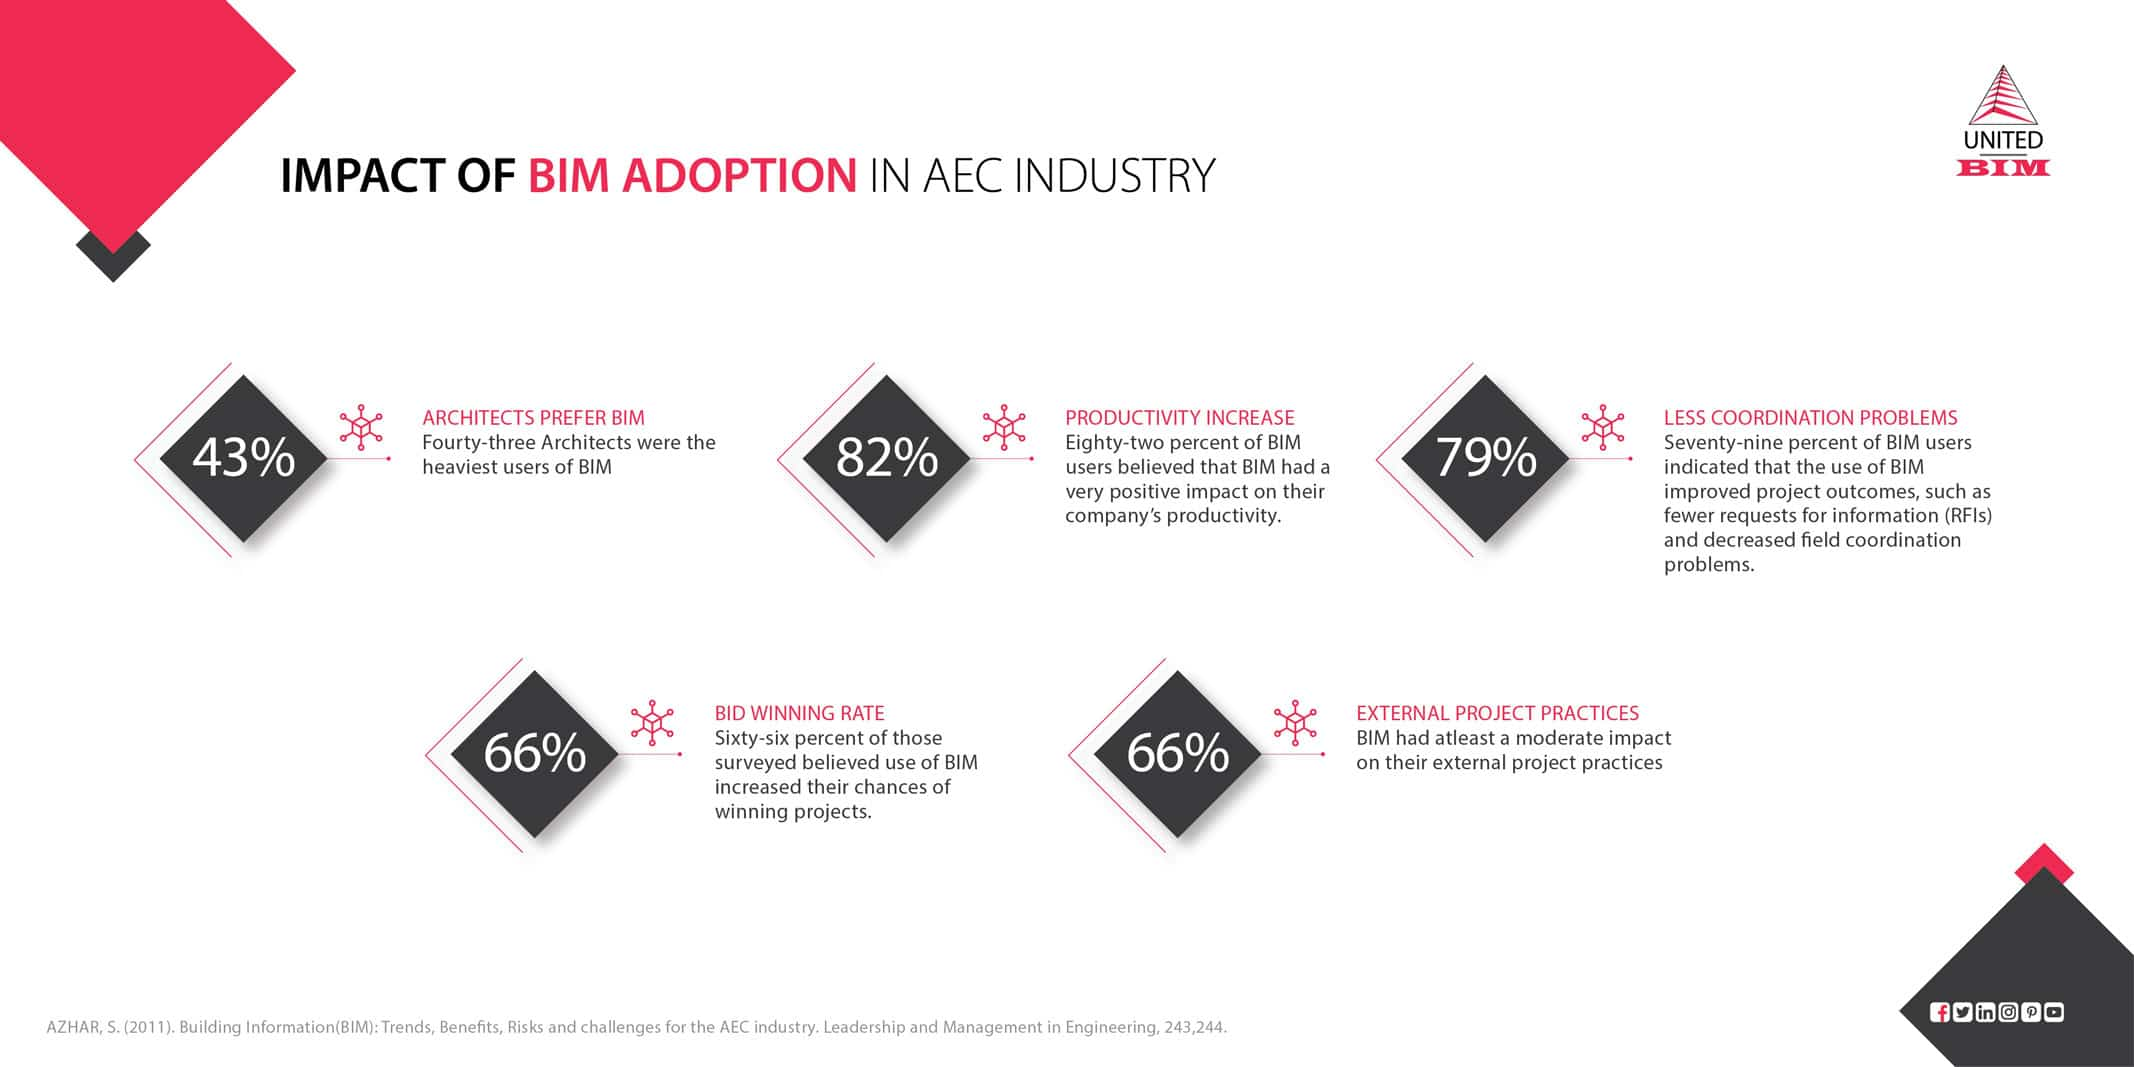 Impact-of-BIM-adoption-in-AEC-industry